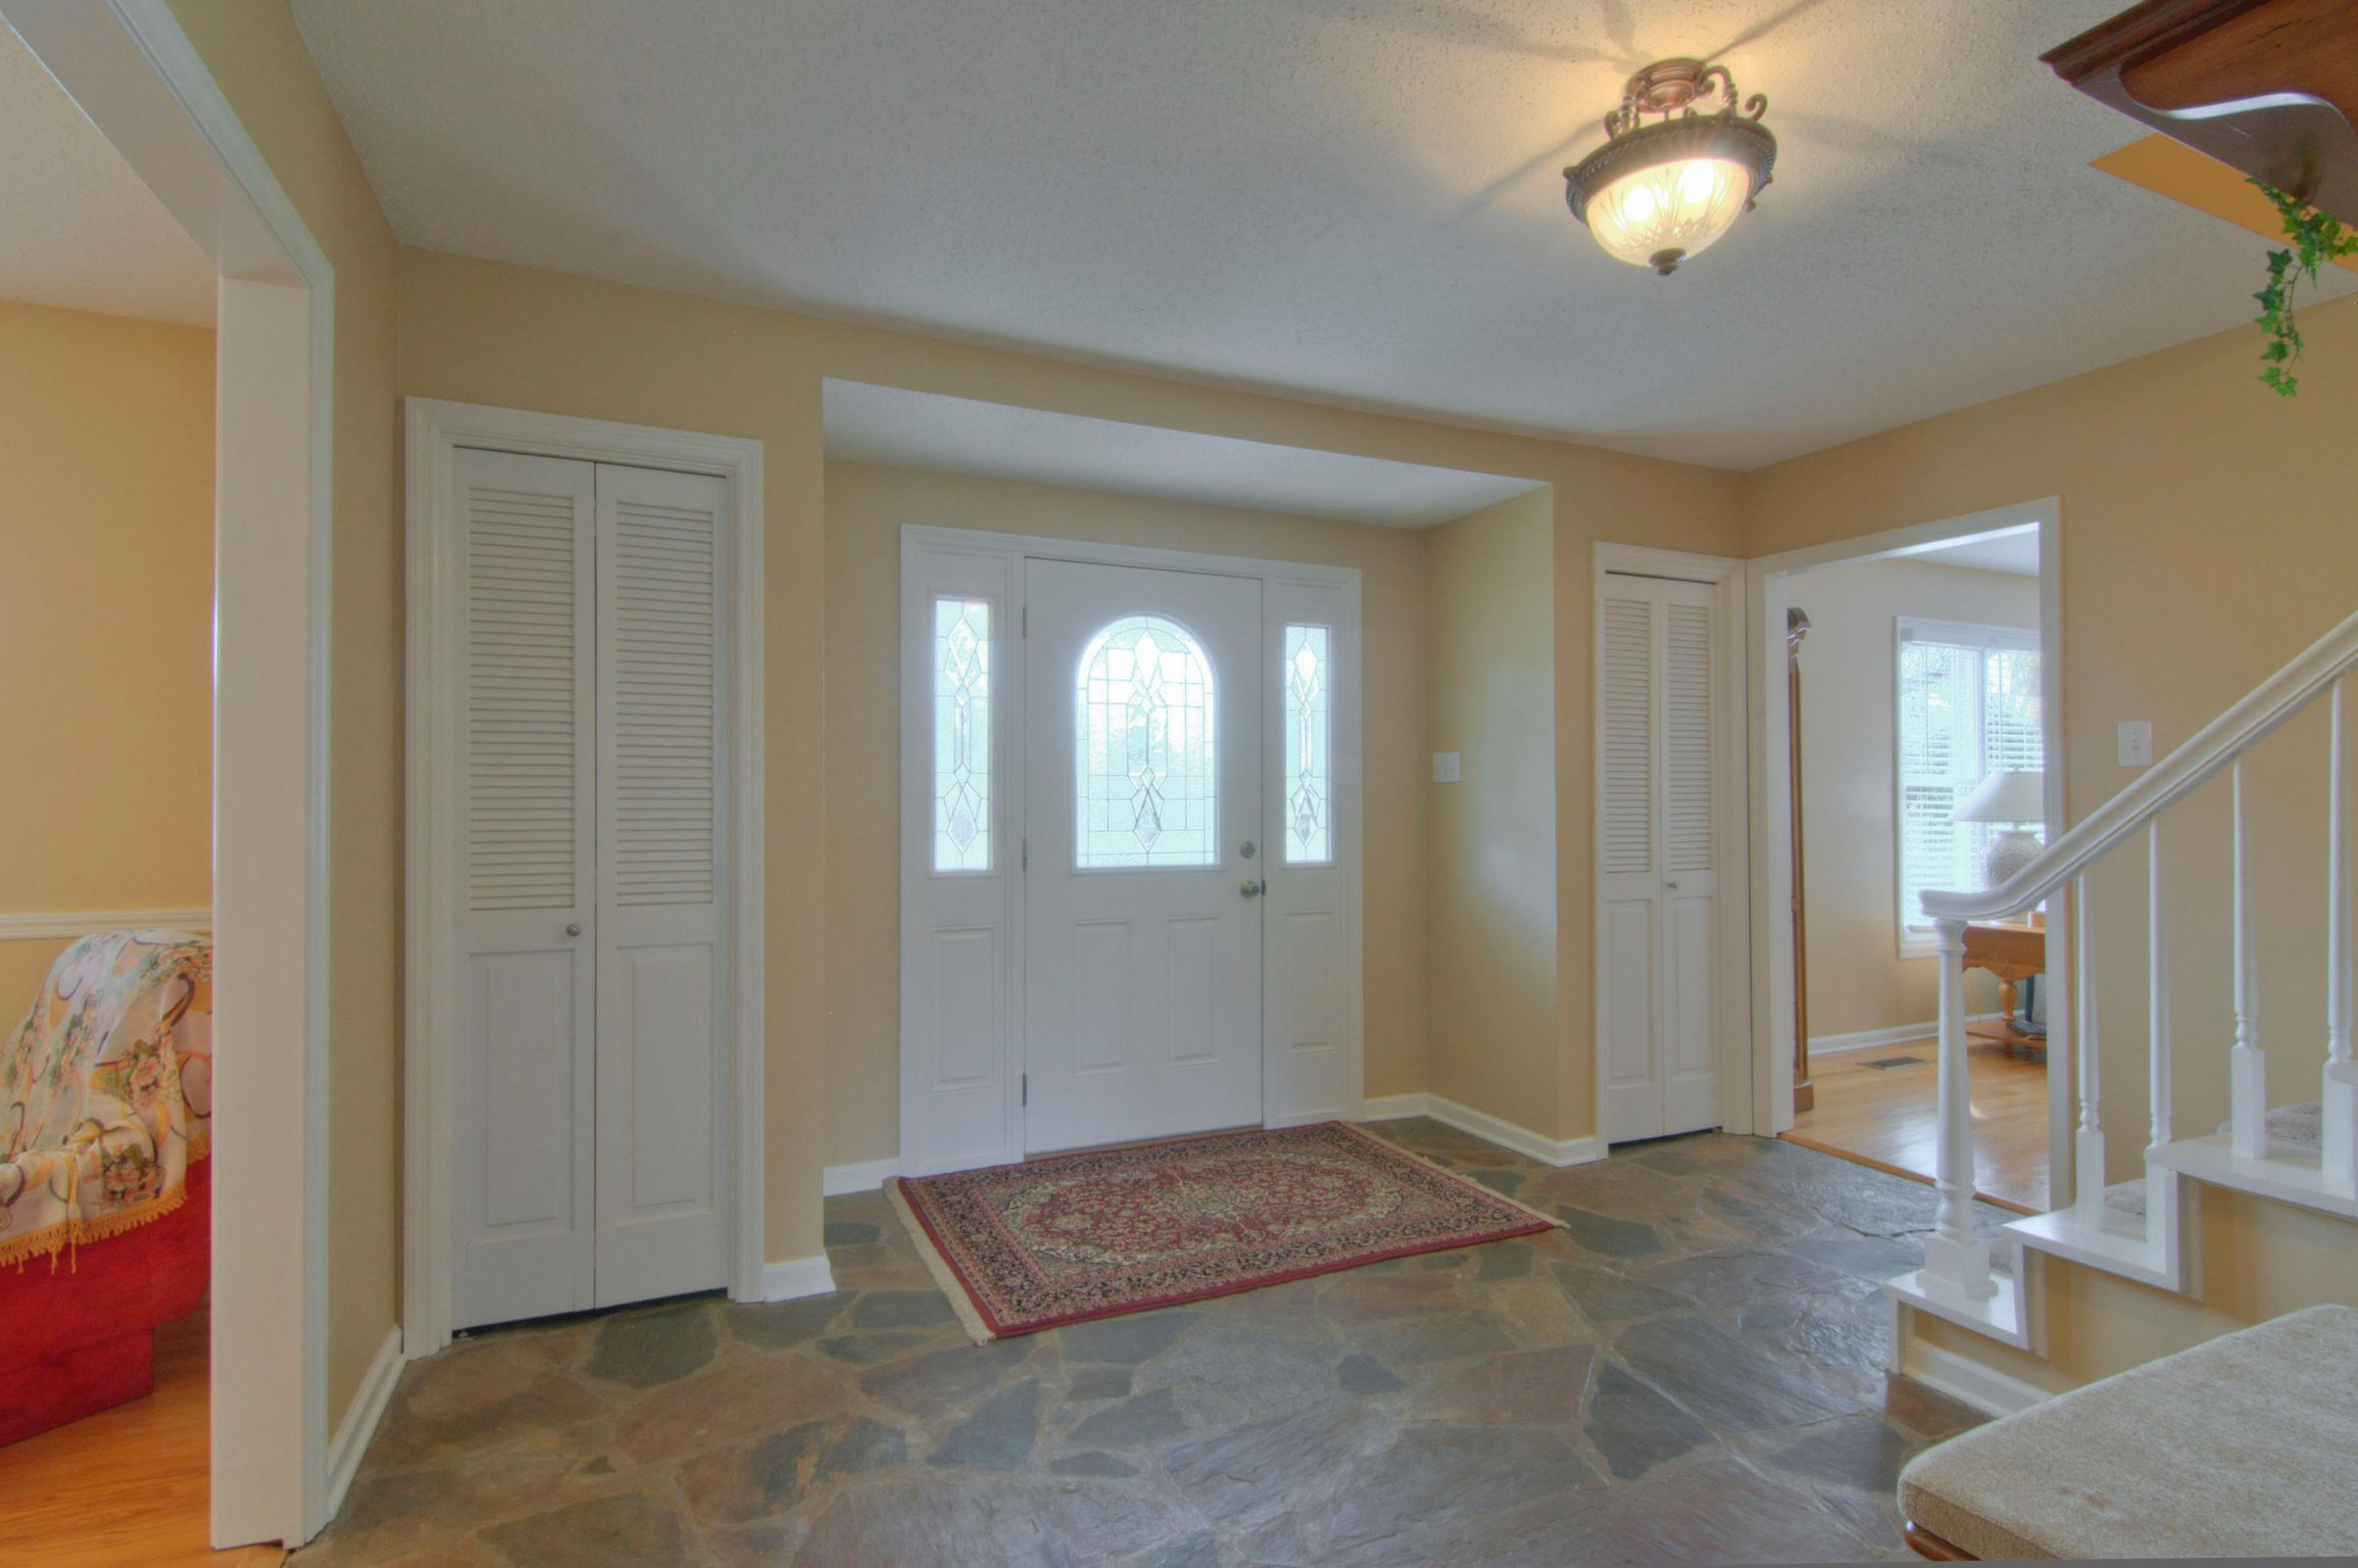 LARGE SPACIOUS FOYER